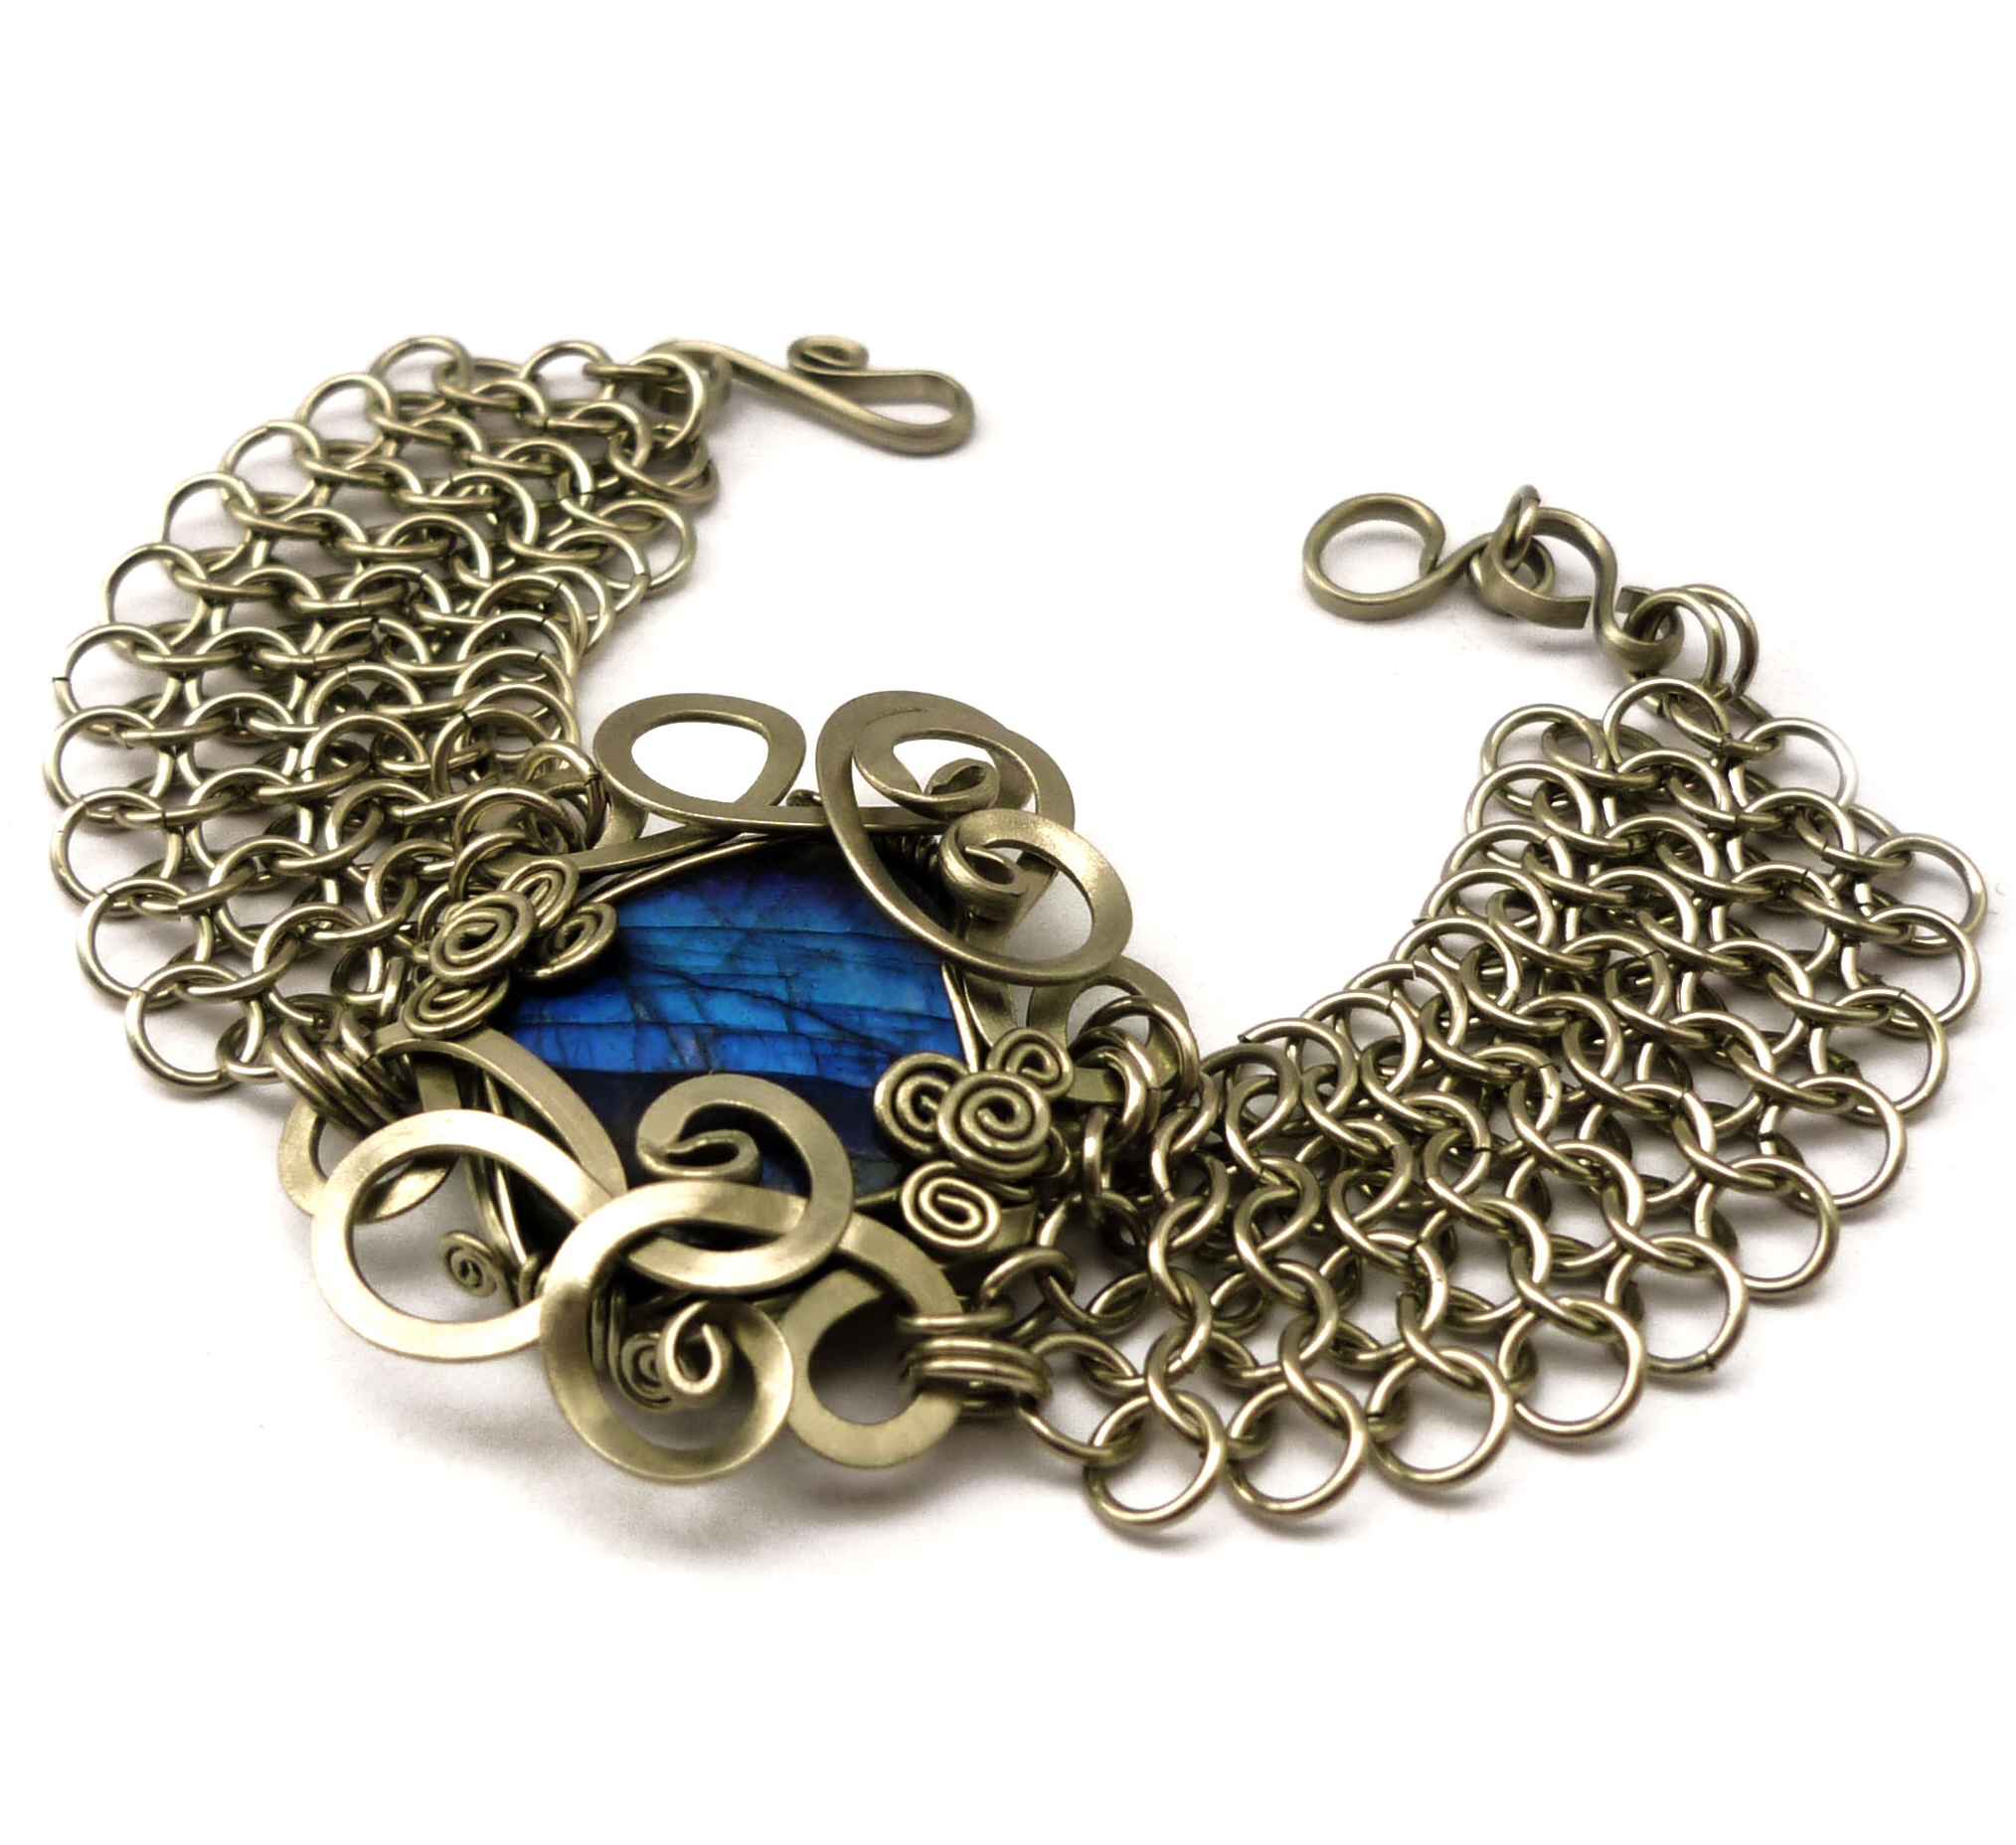 Make A Chain Mail Bracelet: Wire Wrap Chainmaille Bracelet With Labradorite By